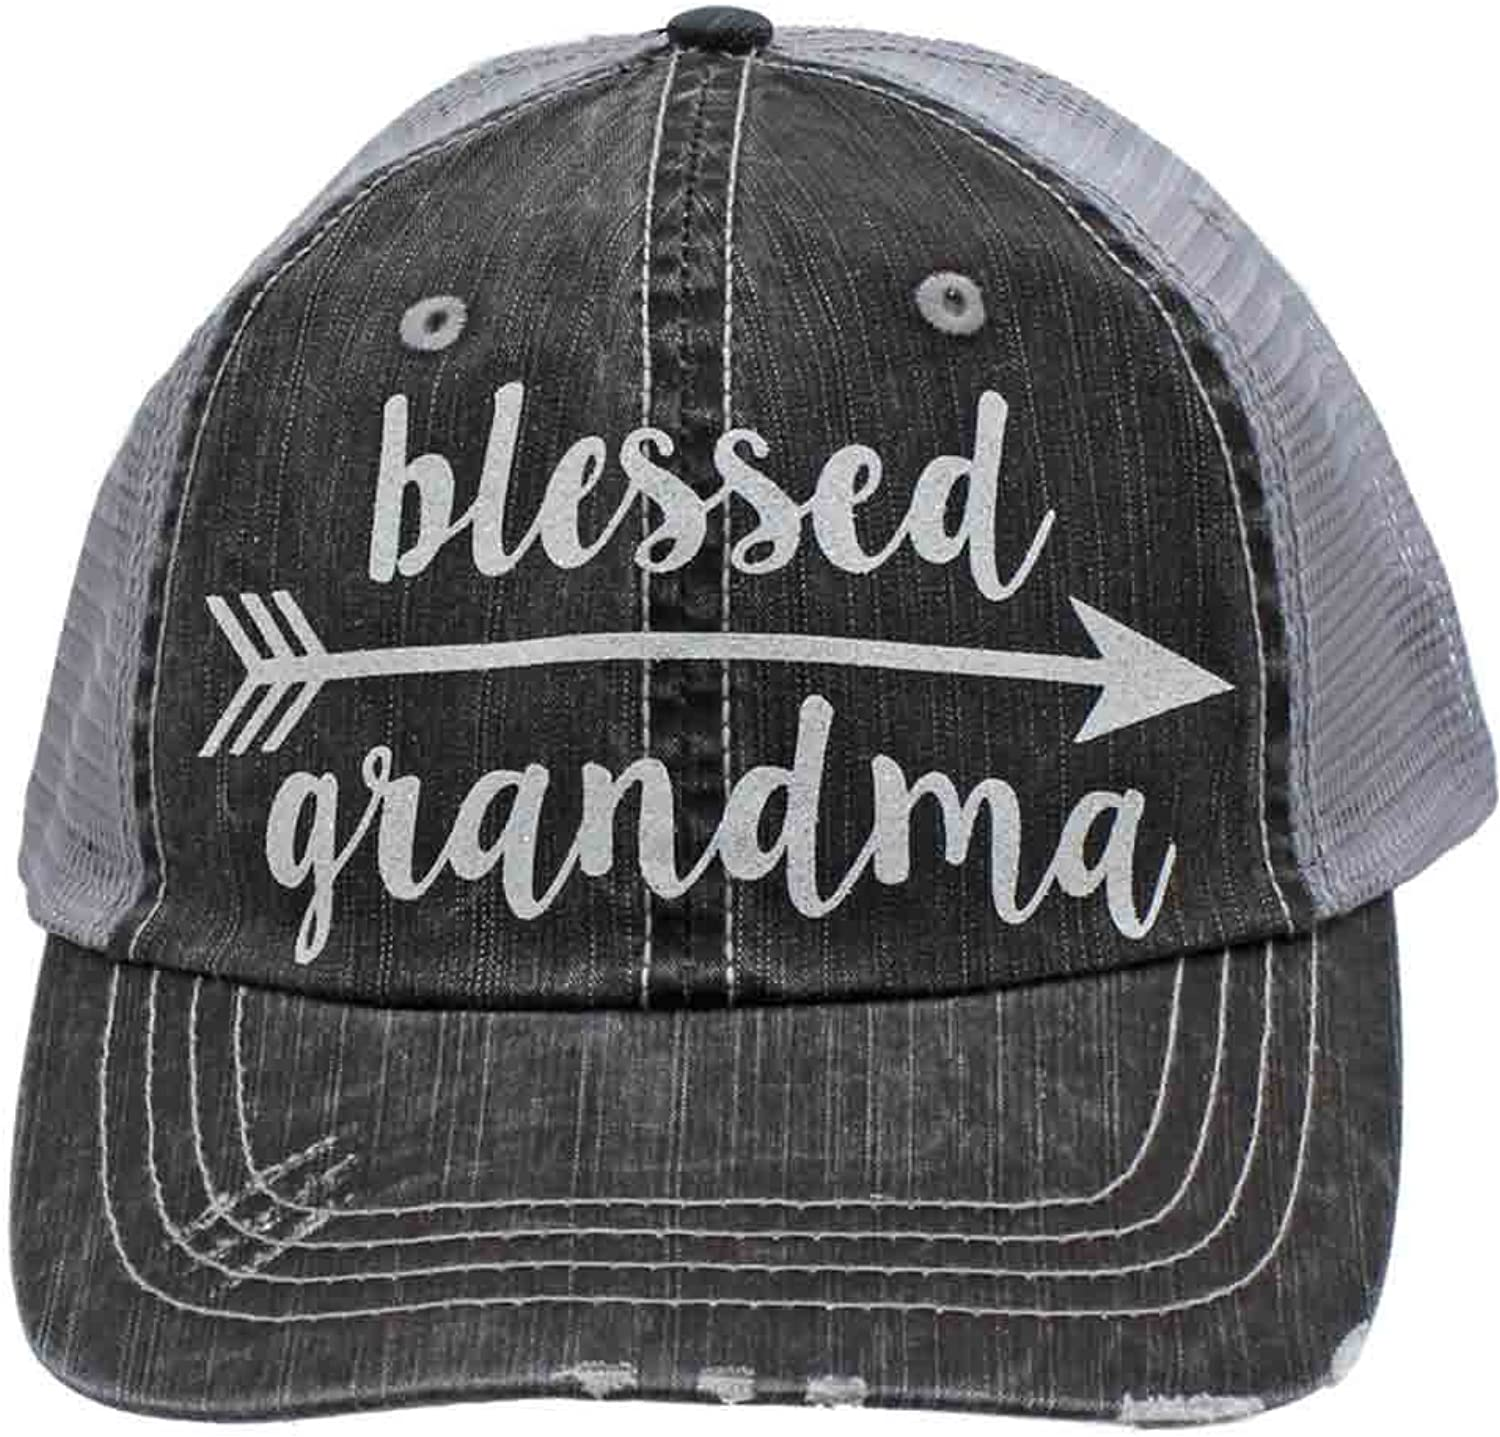 Blessed Grandma Arrow Glittering Distressed Trucker Style Cap Hat Rocks any Outfit